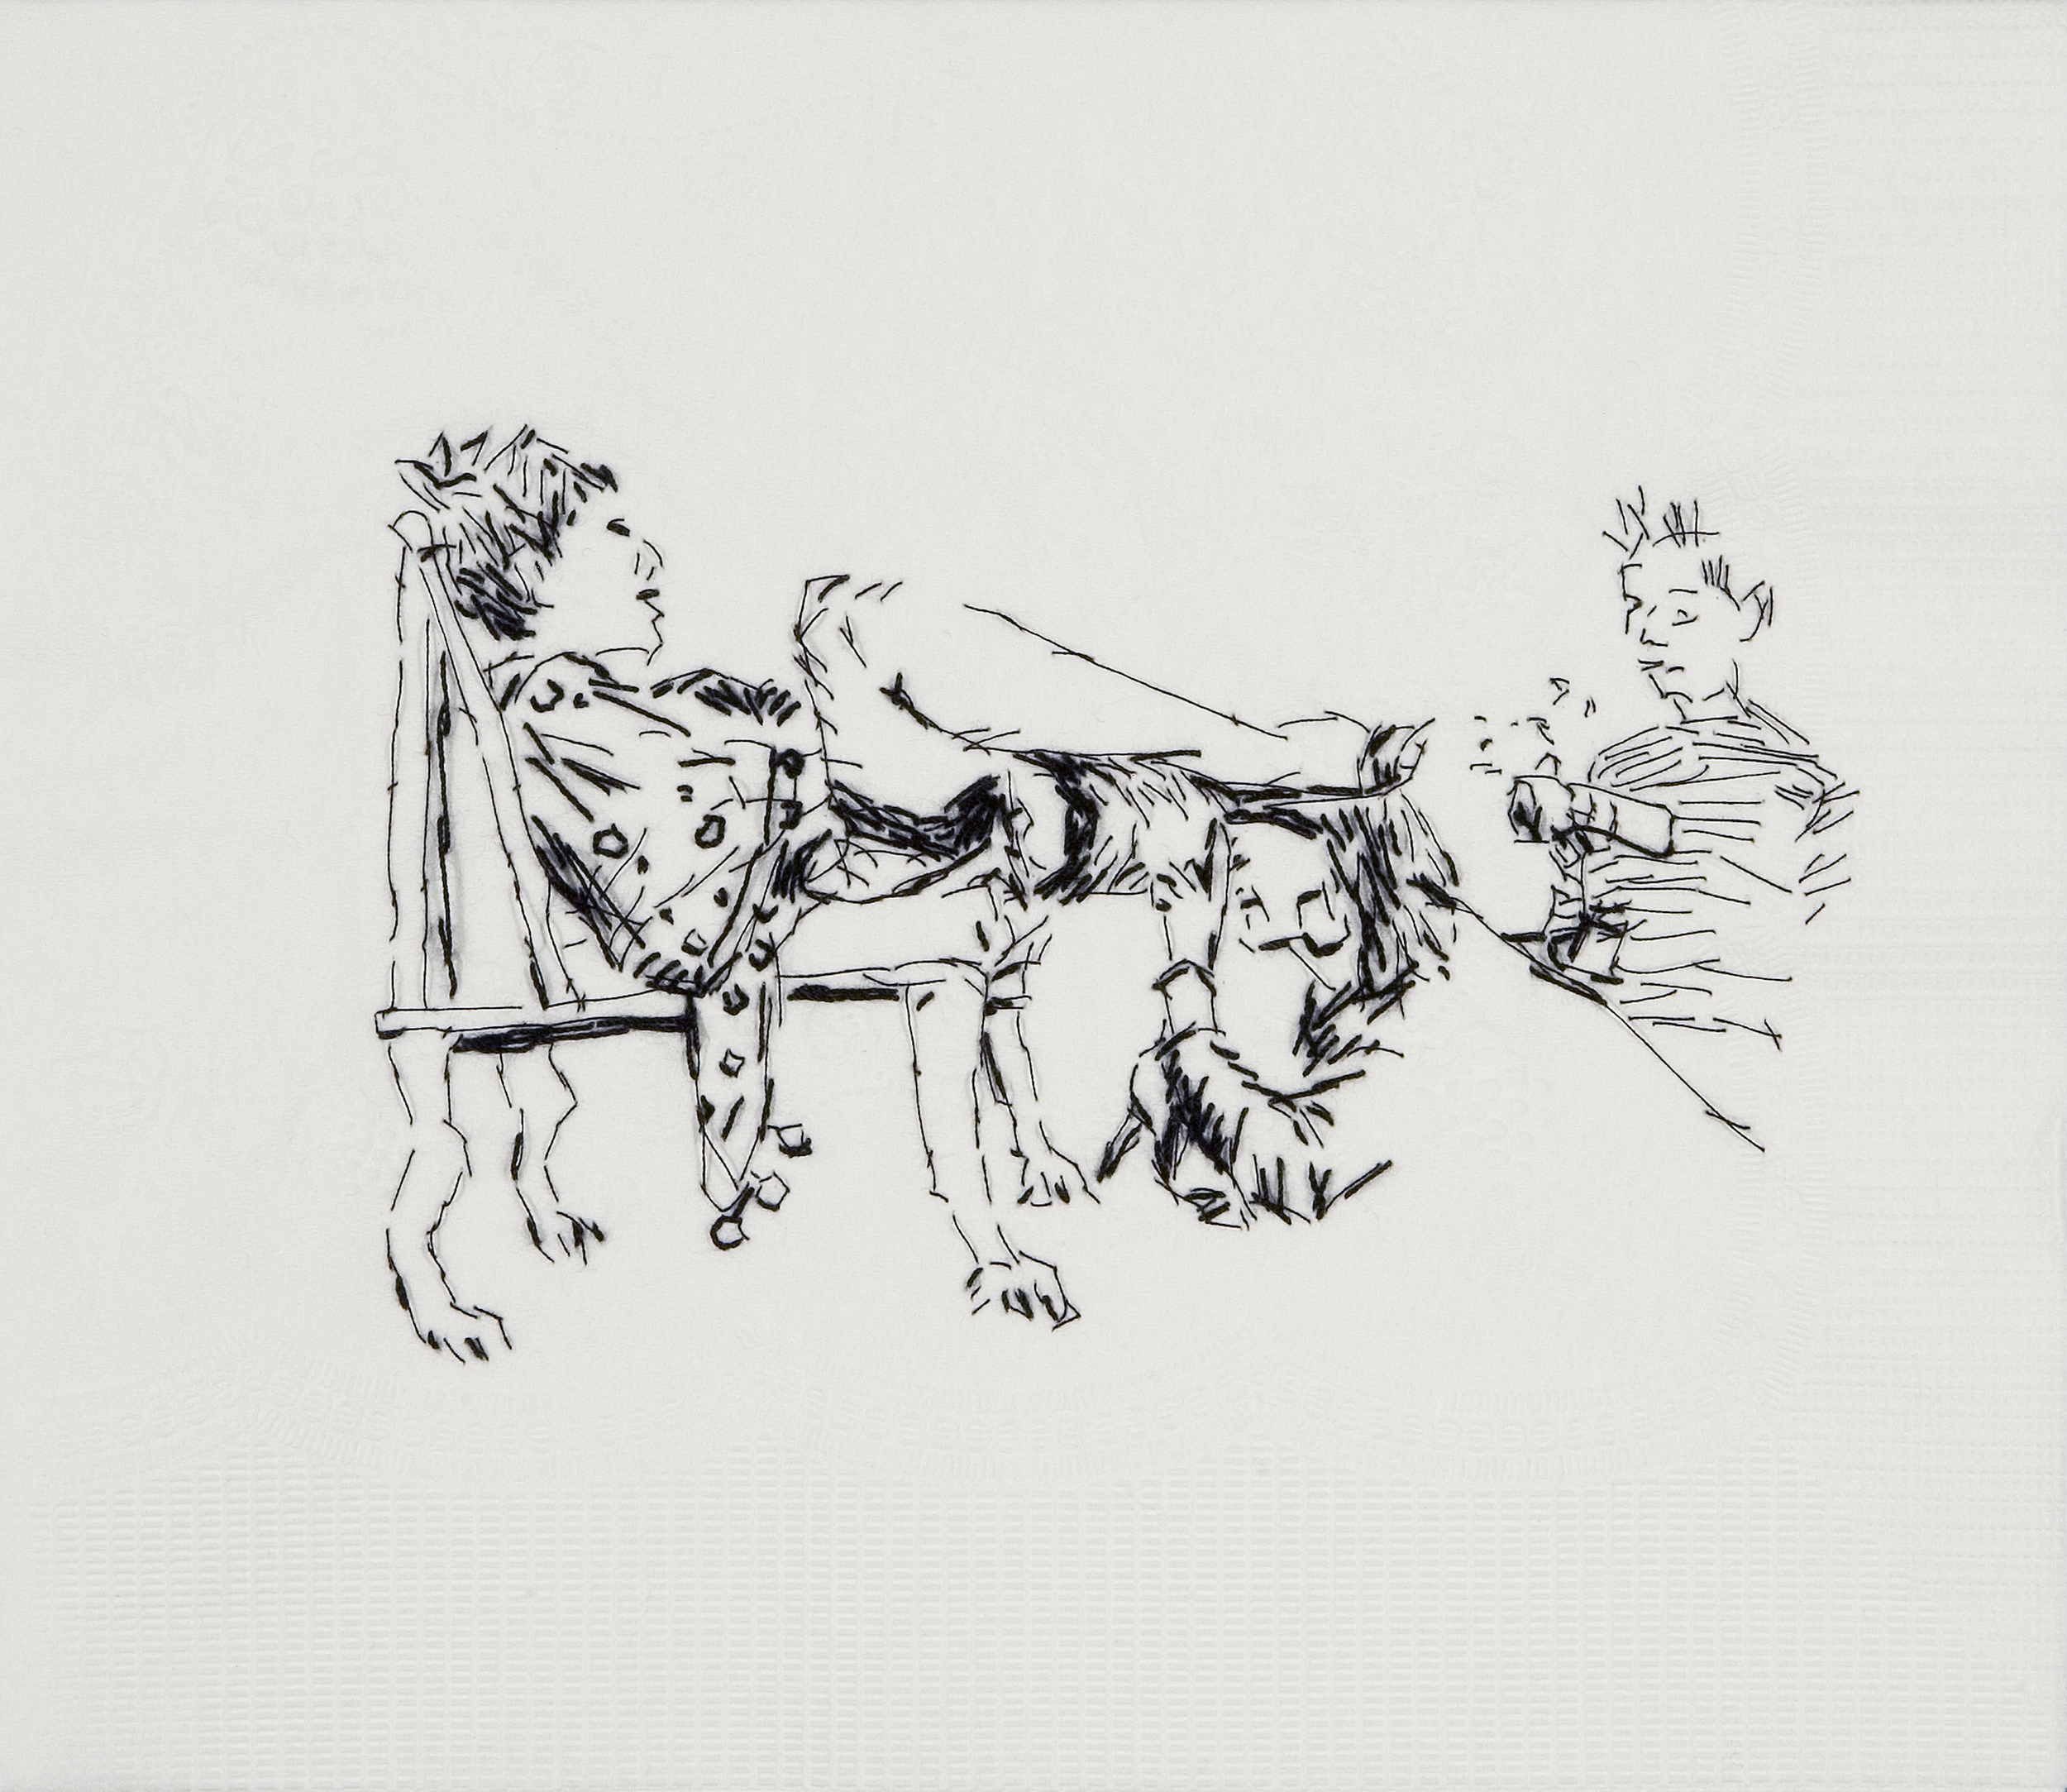 "Sister Wife Annie (Public Cervix Announcement, 1989)  Black thread on paper napkin, 7.5"" x 8.5"", 2008"